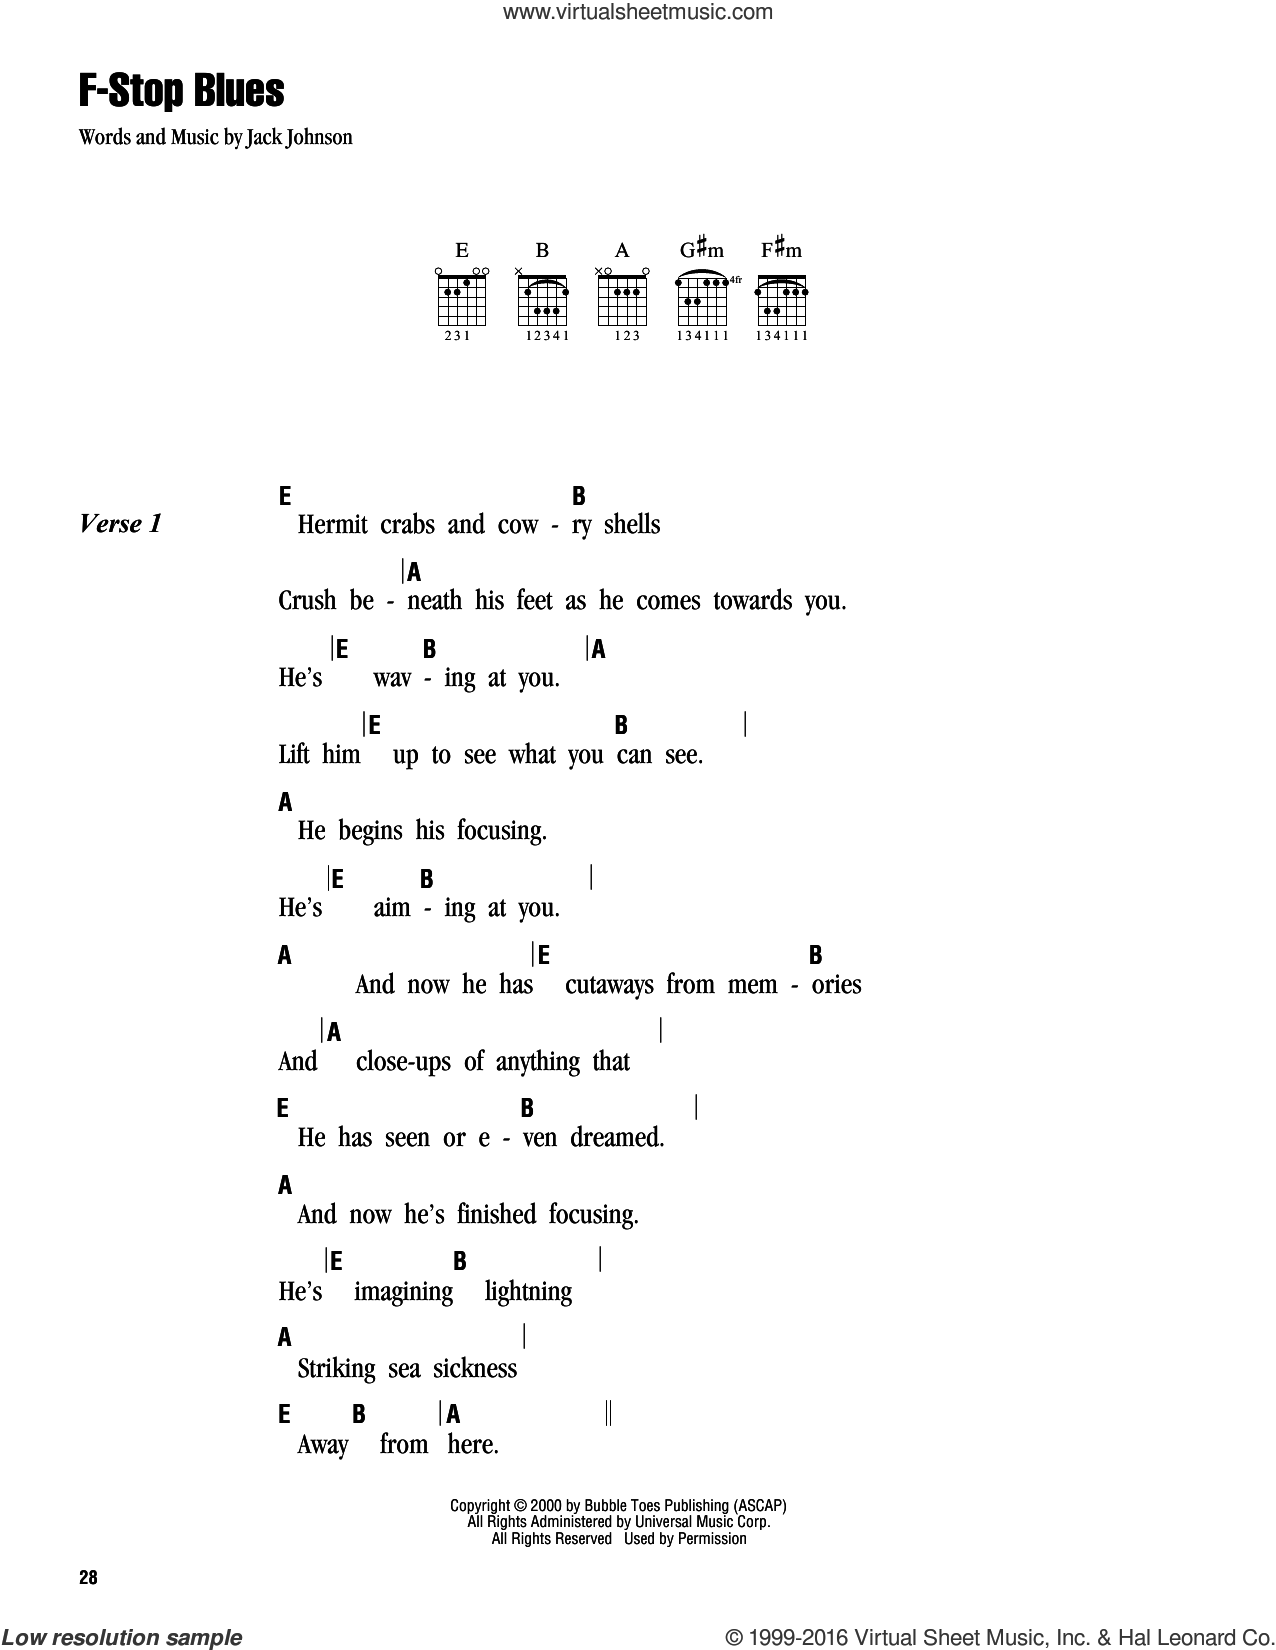 F-Stop Blues sheet music for guitar (chords) by Jack Johnson. Score Image Preview.